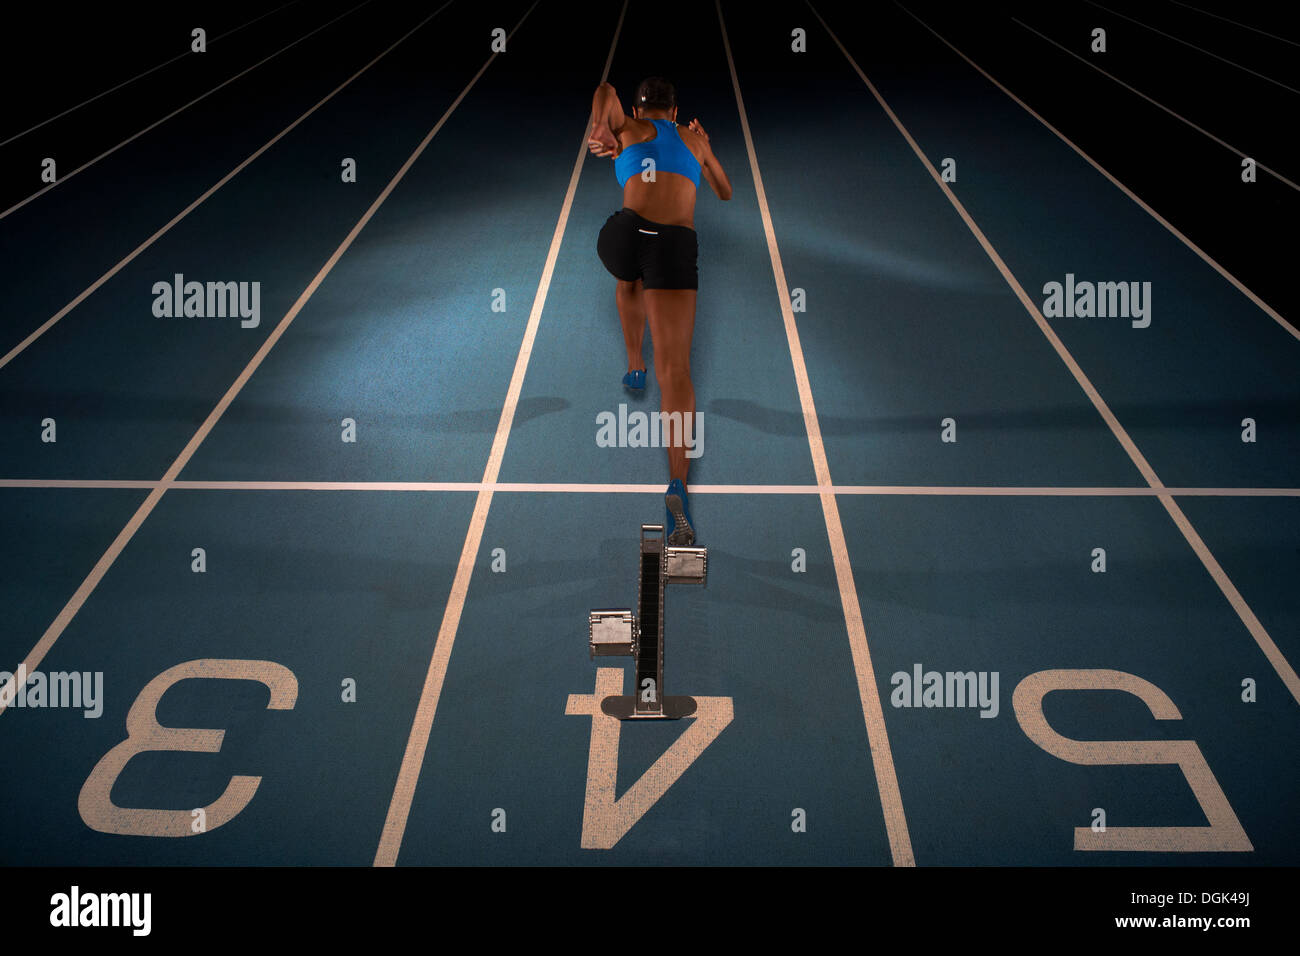 Young female athlete starting race, high angle - Stock Image